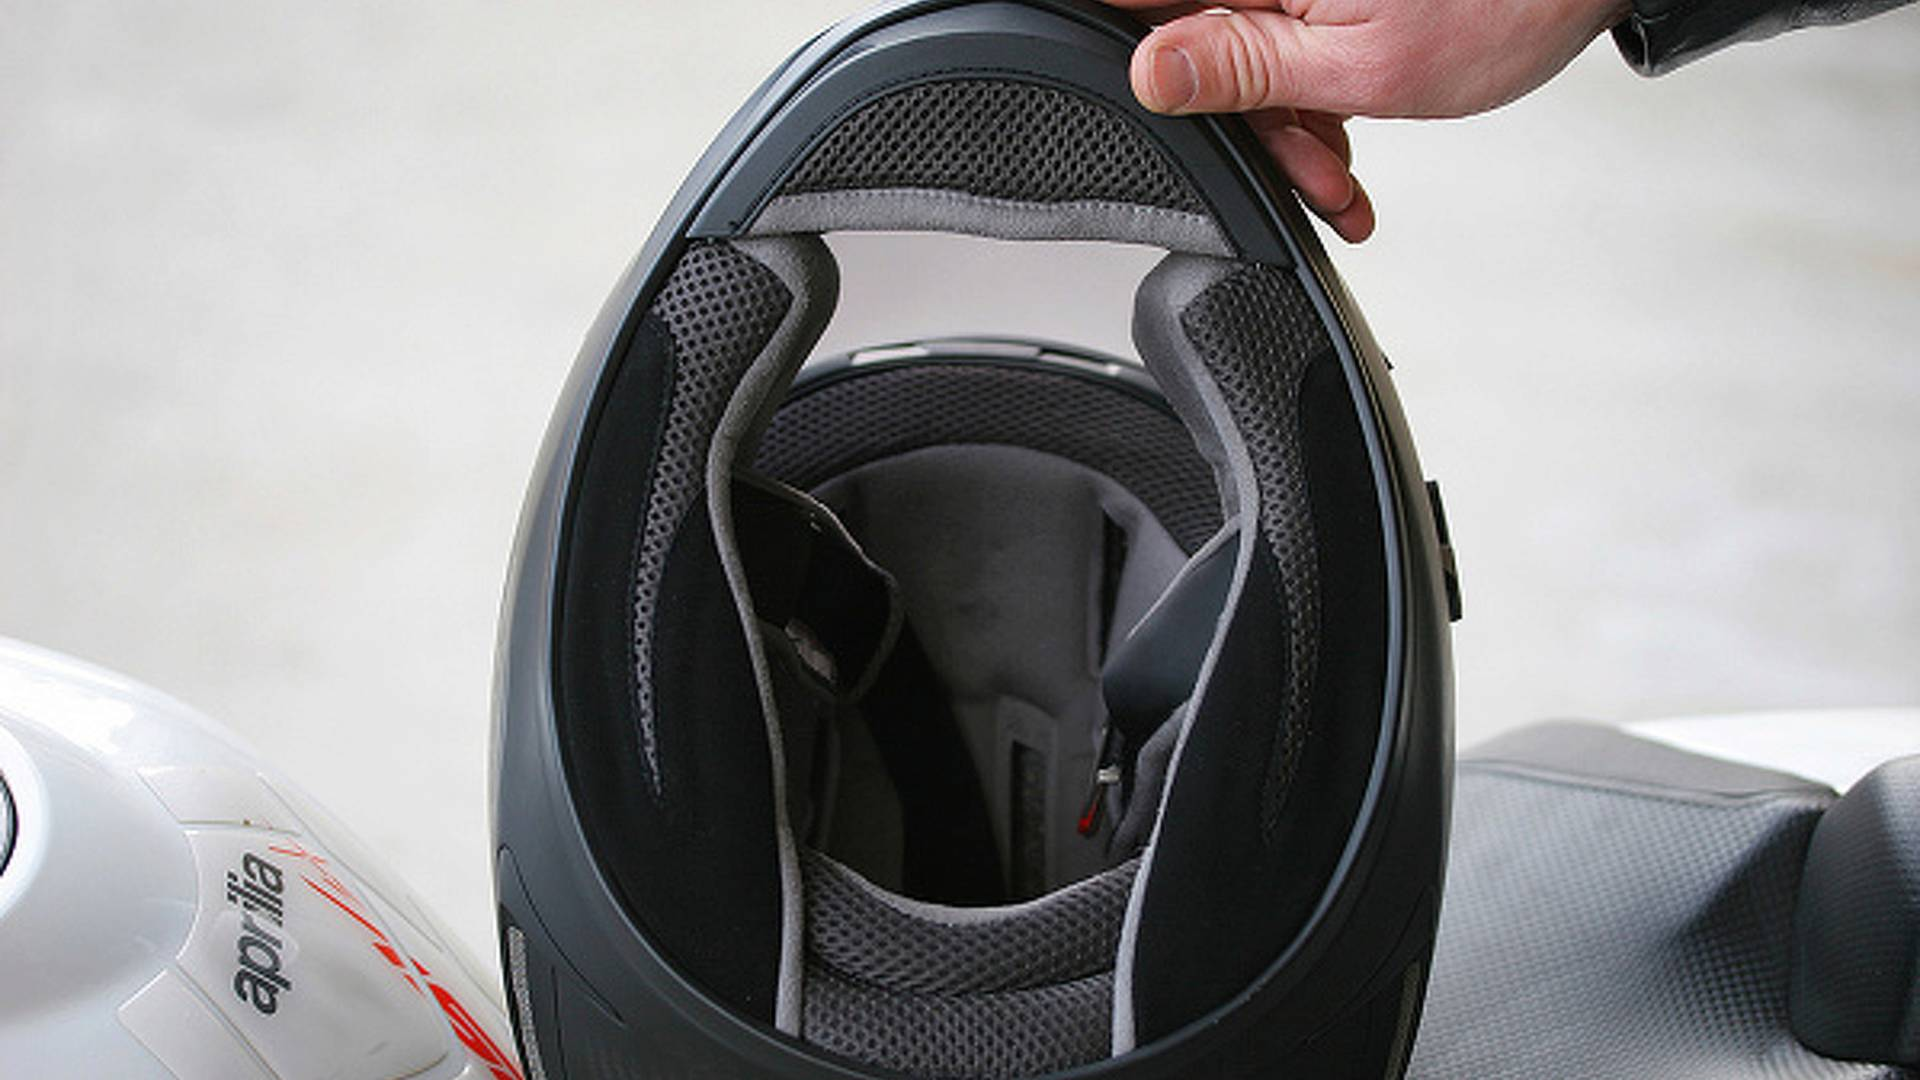 Bell Replacement Star X-Static Cheek Pads For Motorcycle Helmet Padding Interior